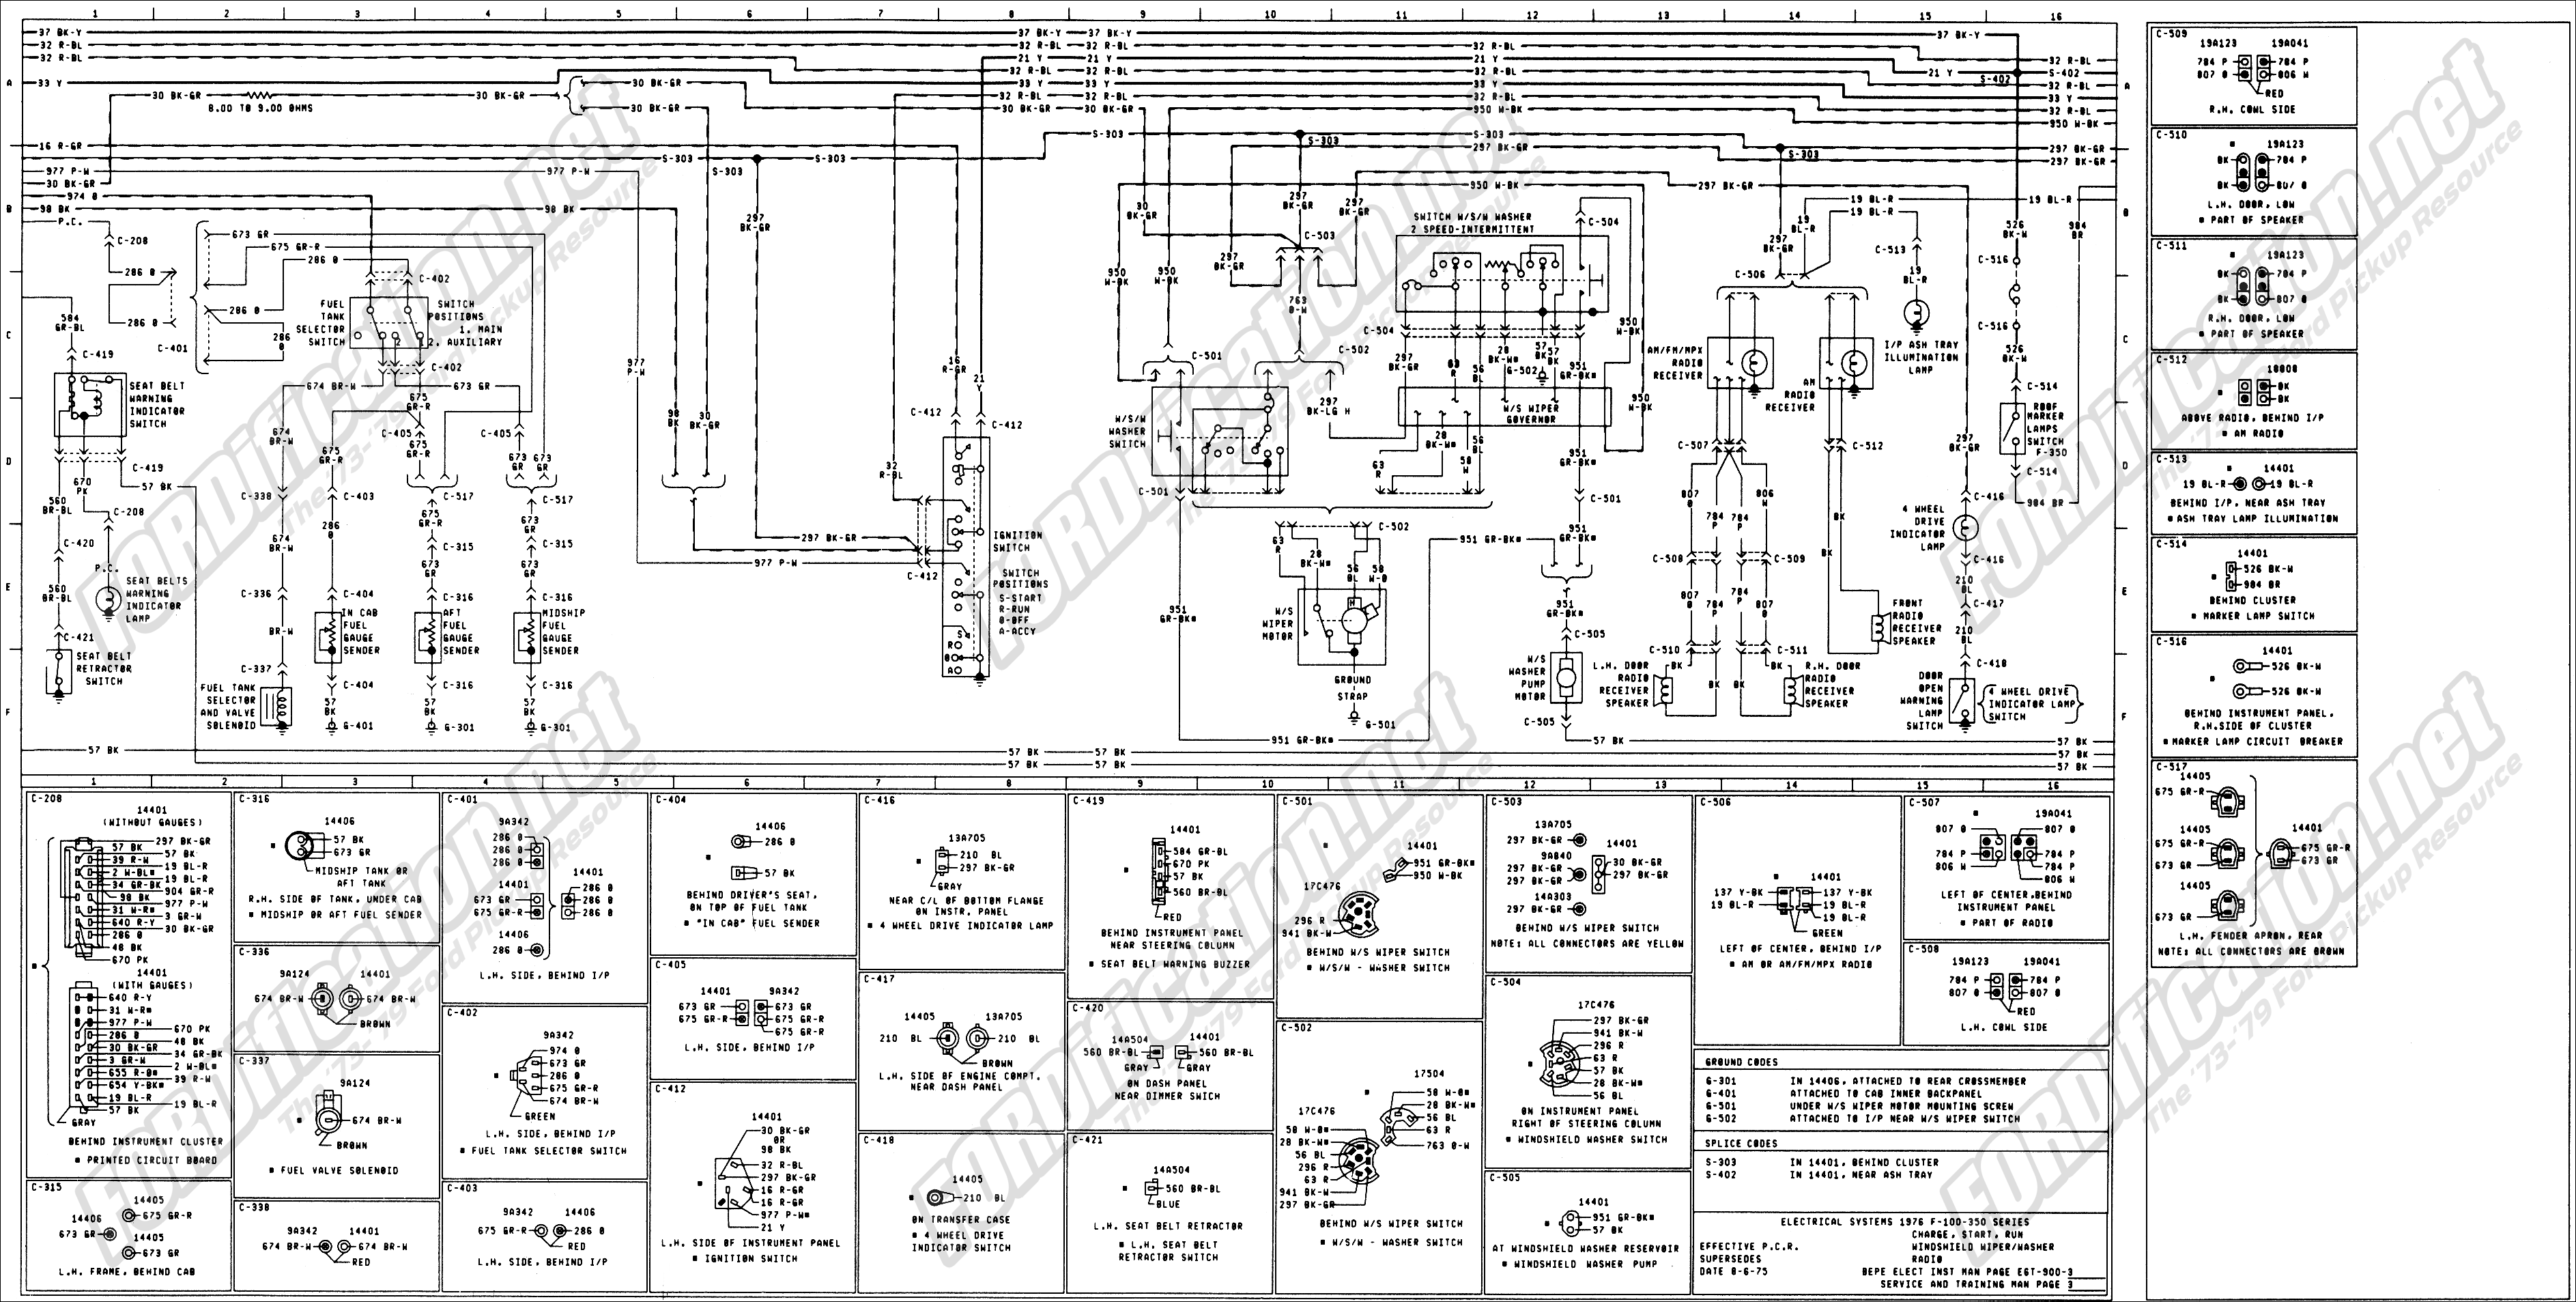 2008 Ford Explorer Left Headlight Wiring Diagram 1991 F250 Fuse Box Instrument Cluster Various Electrical Issues Page 2